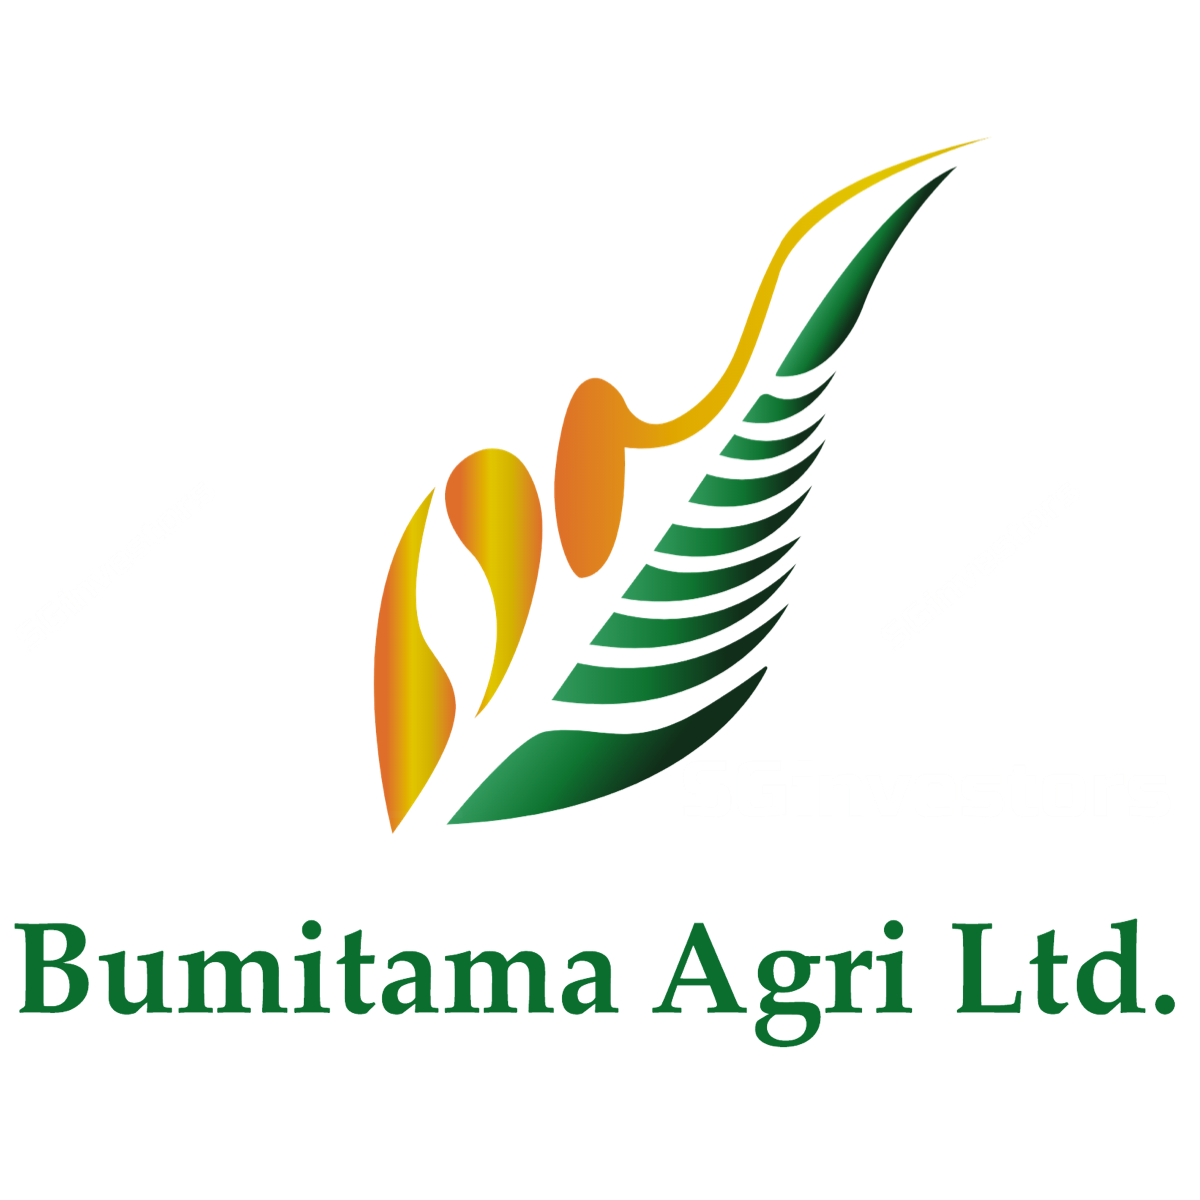 Bumitama Agri - UOB Kay Hian 2018-05-09: 1q18 Within Expectations